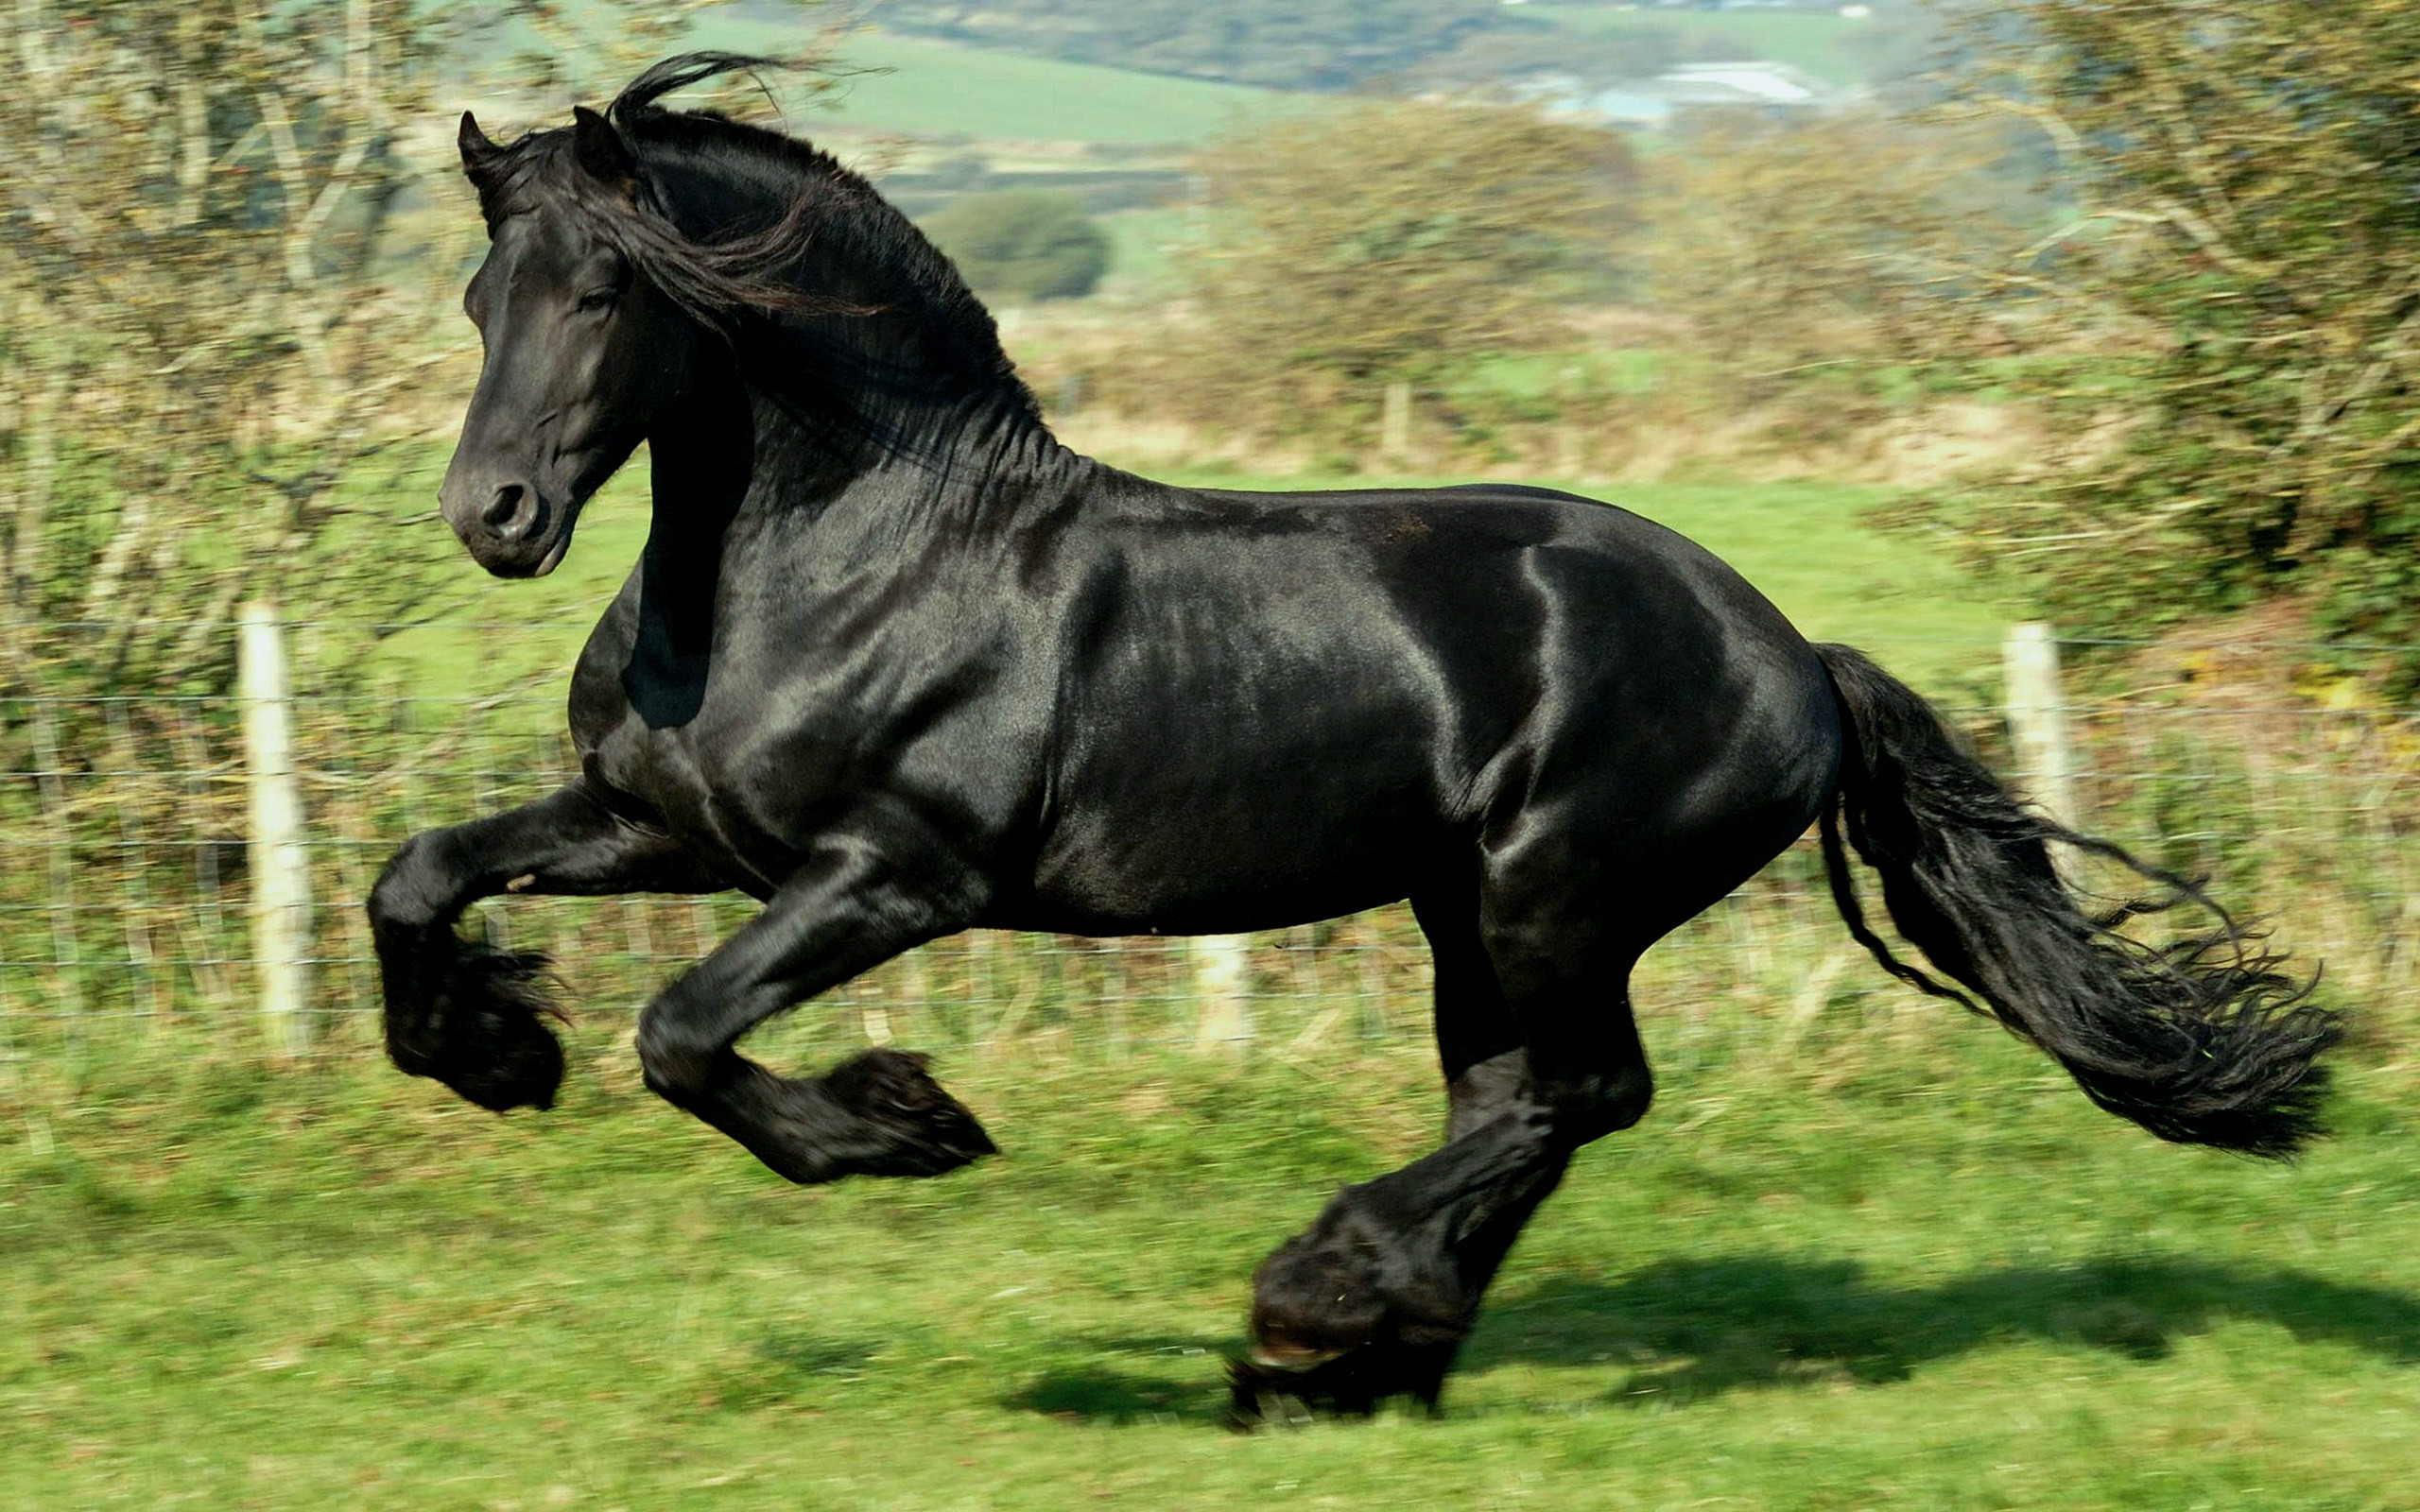 Wallpaper Beauty Black Horse 2560x1600 Wallpapers 3d For Desktop